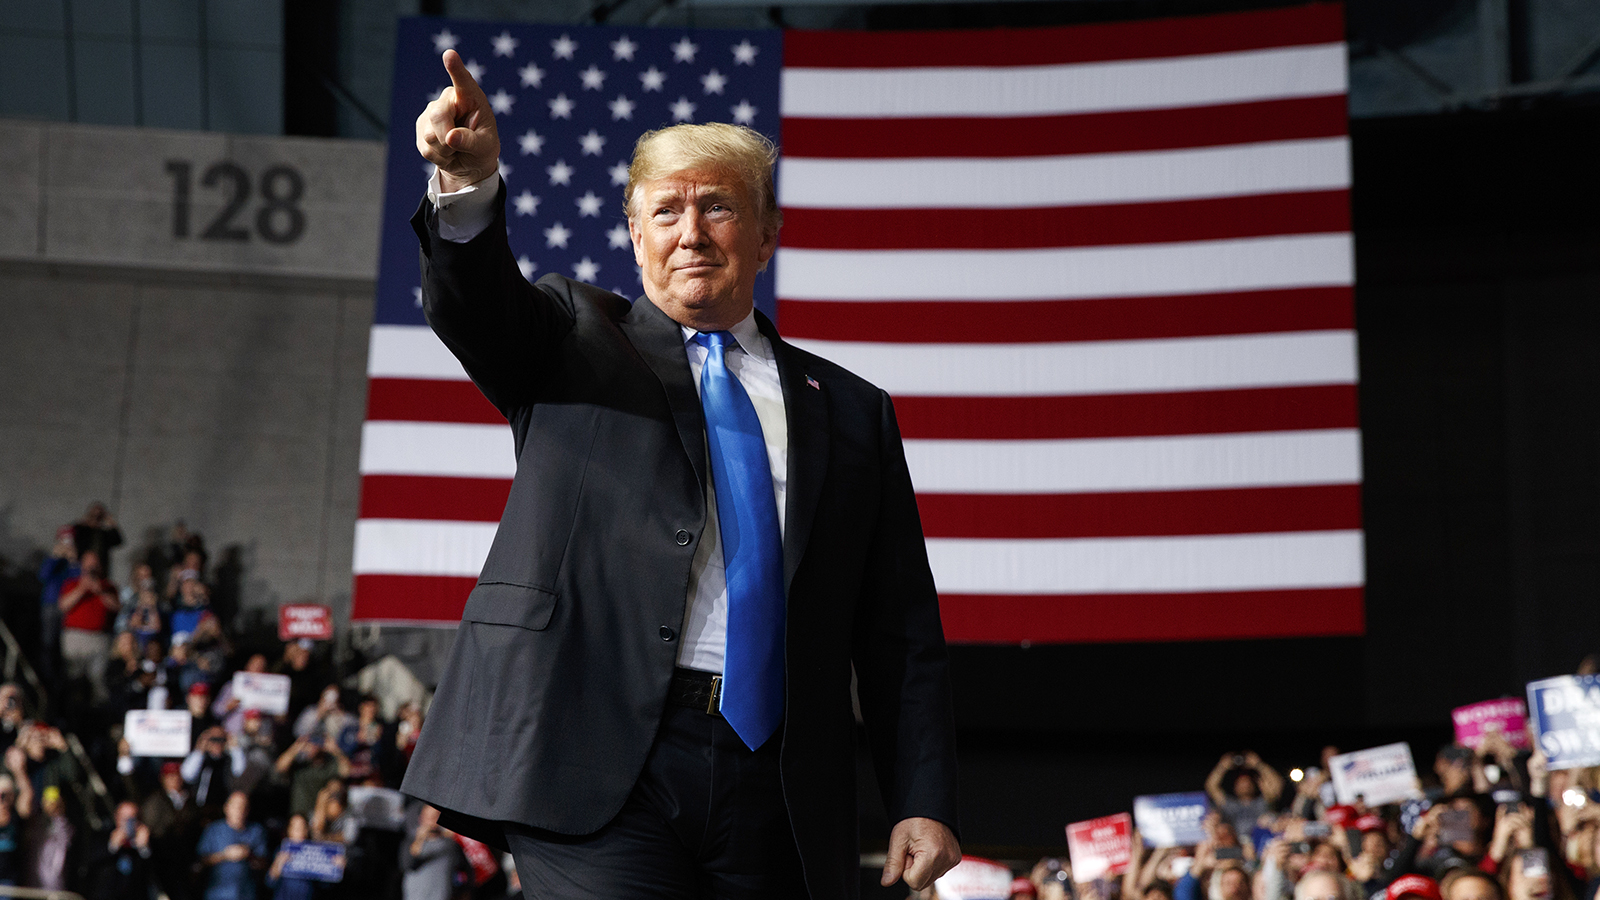 President Trump arrives to speak at a campaign rally at Bojangles' Coliseum on Oct. 26, 2018, in Charlotte, N.C. (AP Photo/Evan Vucci)